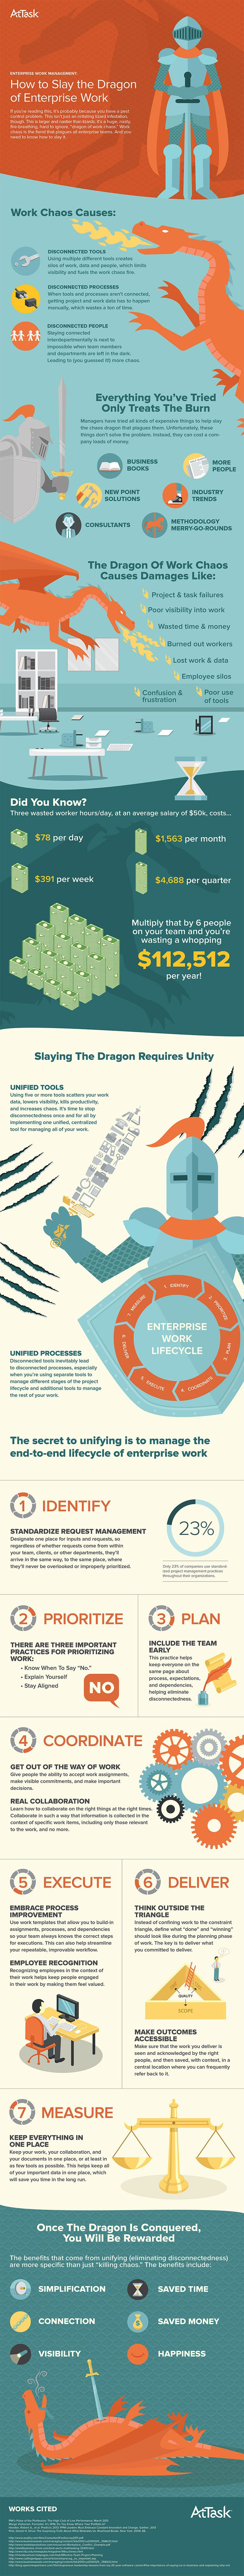 How to Slay the Dragon of Enterprise Work